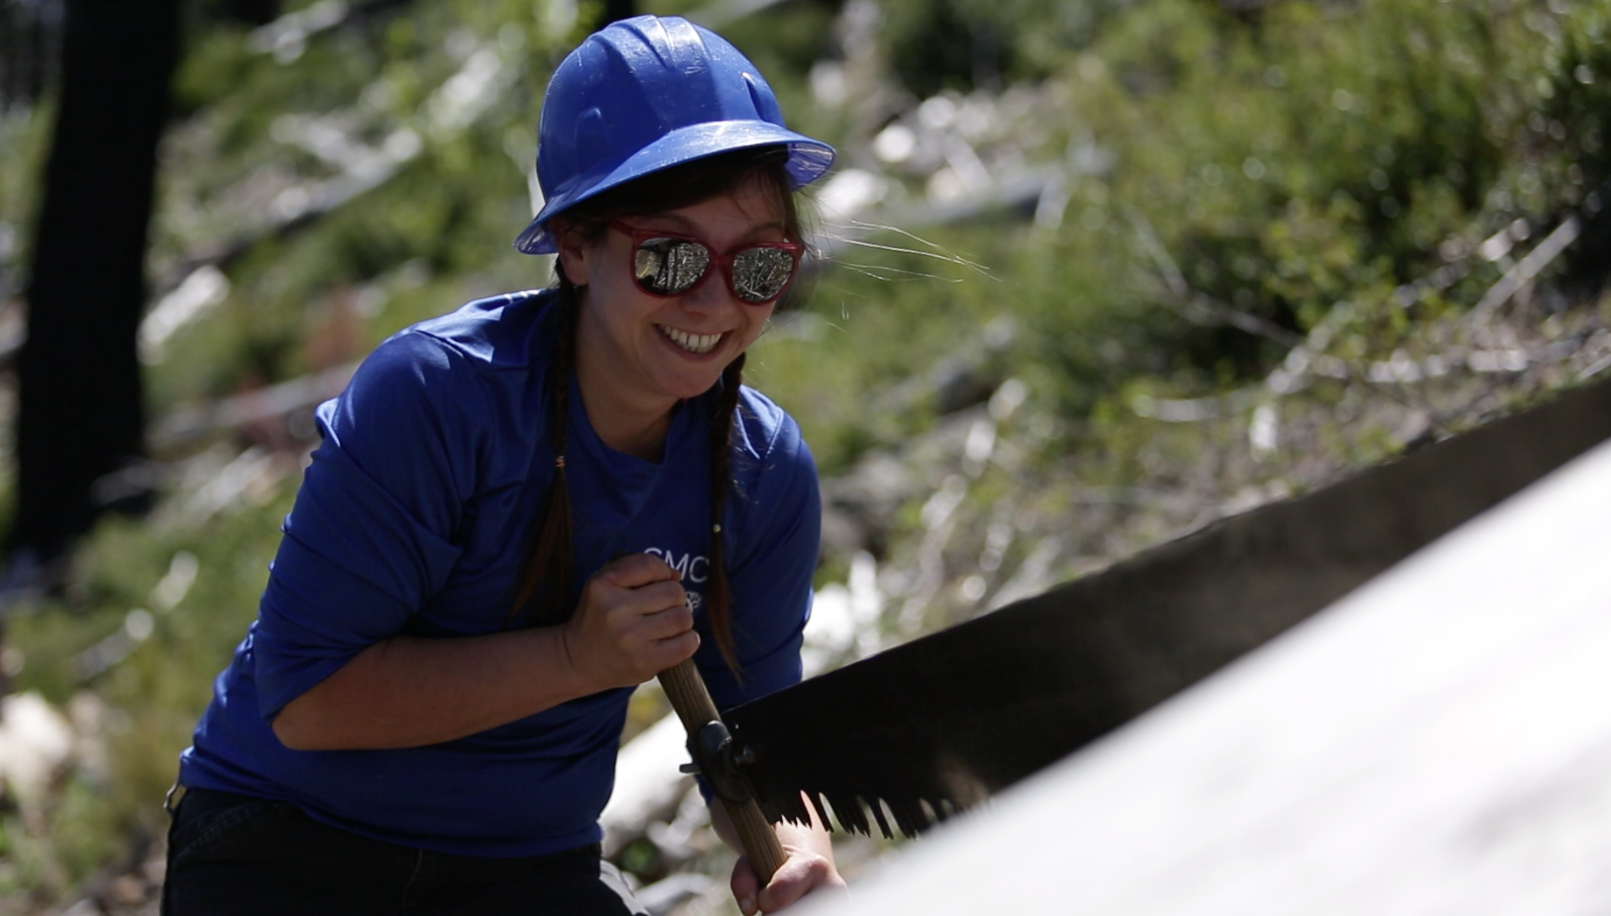 Jill Stokes takes her turn on a crosscut saw.